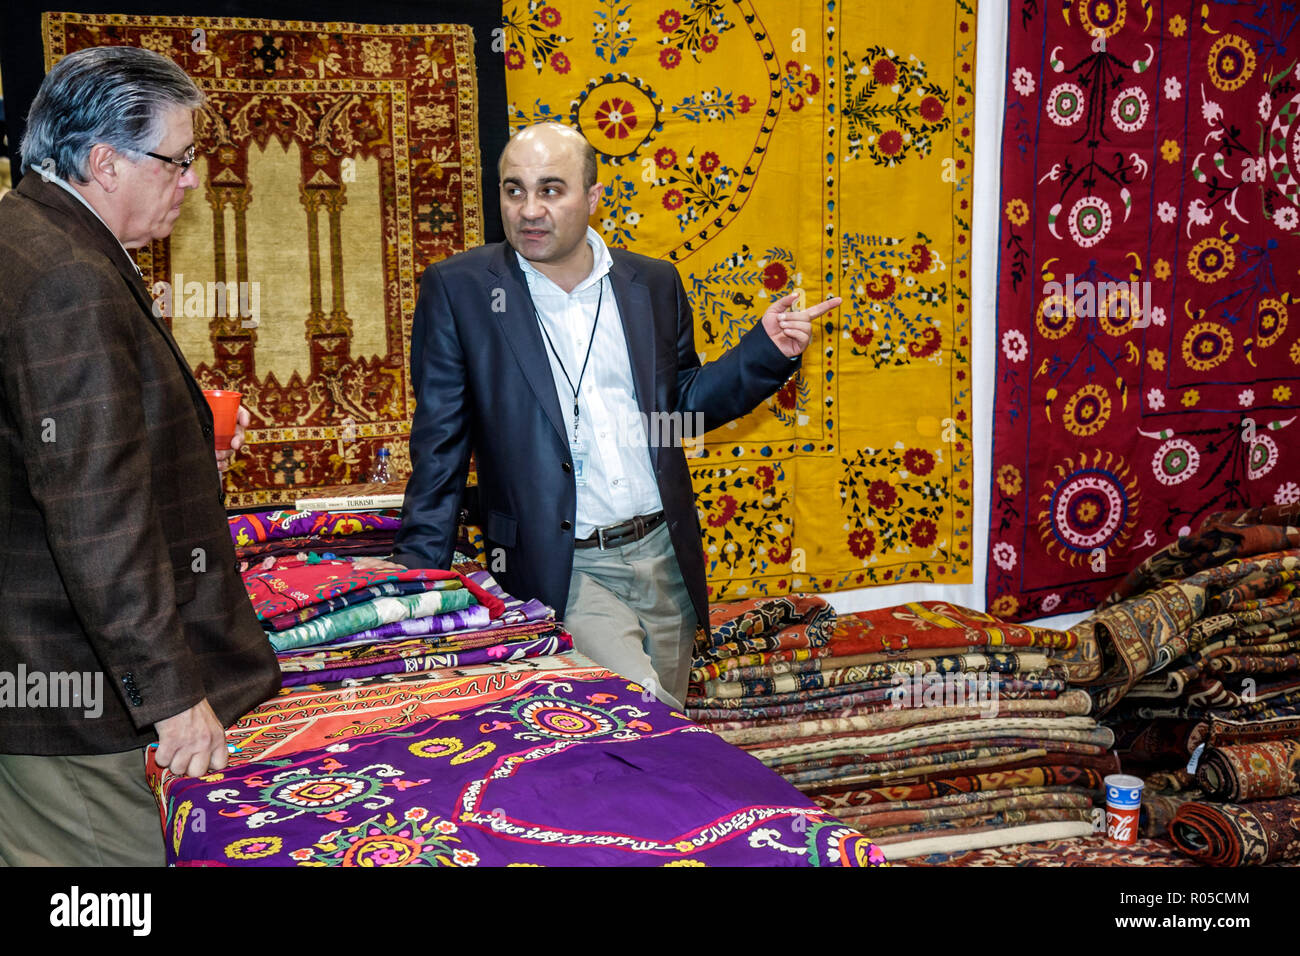 South American Rugs Stock Photos Amp South American Rugs